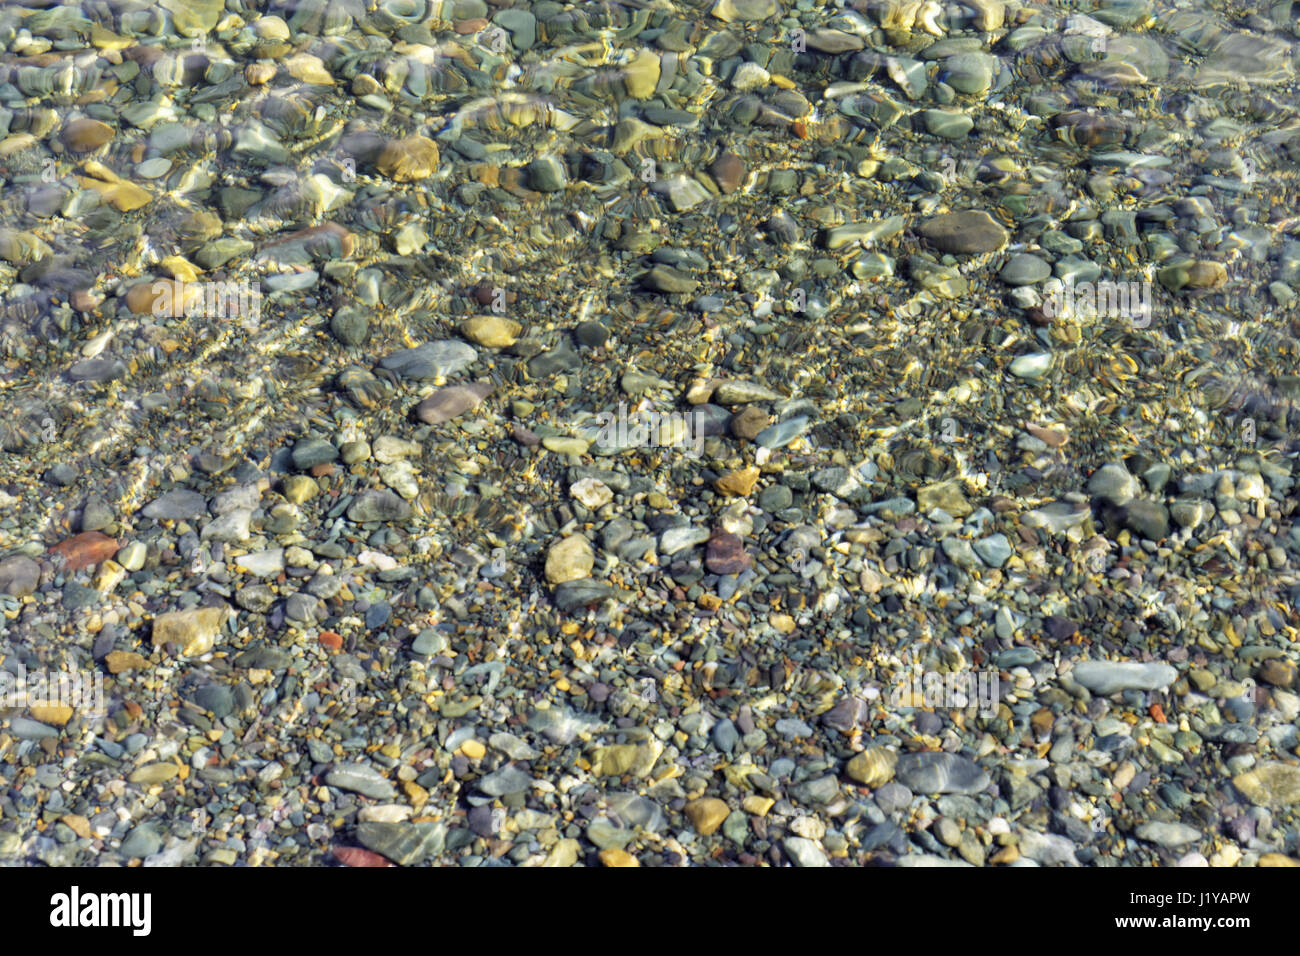 Multicolored pebbles under the water under the sunlight as a background. Focus on the water surfaceenvironment - Stock Image